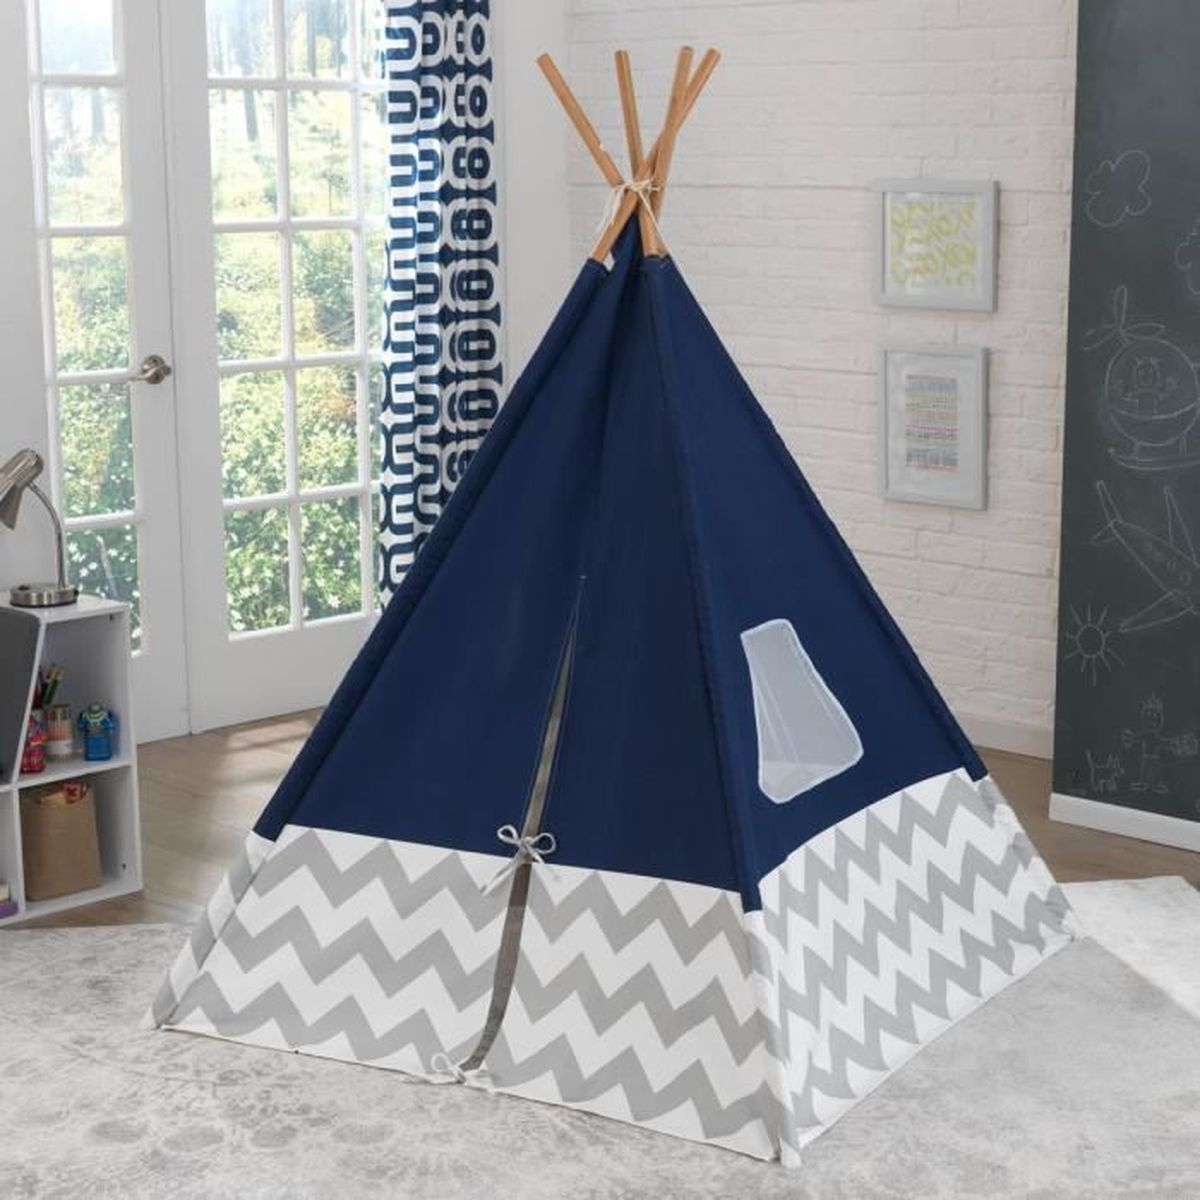 tente tipi d 39 indien pour enfant bleu marine jeux jouets. Black Bedroom Furniture Sets. Home Design Ideas